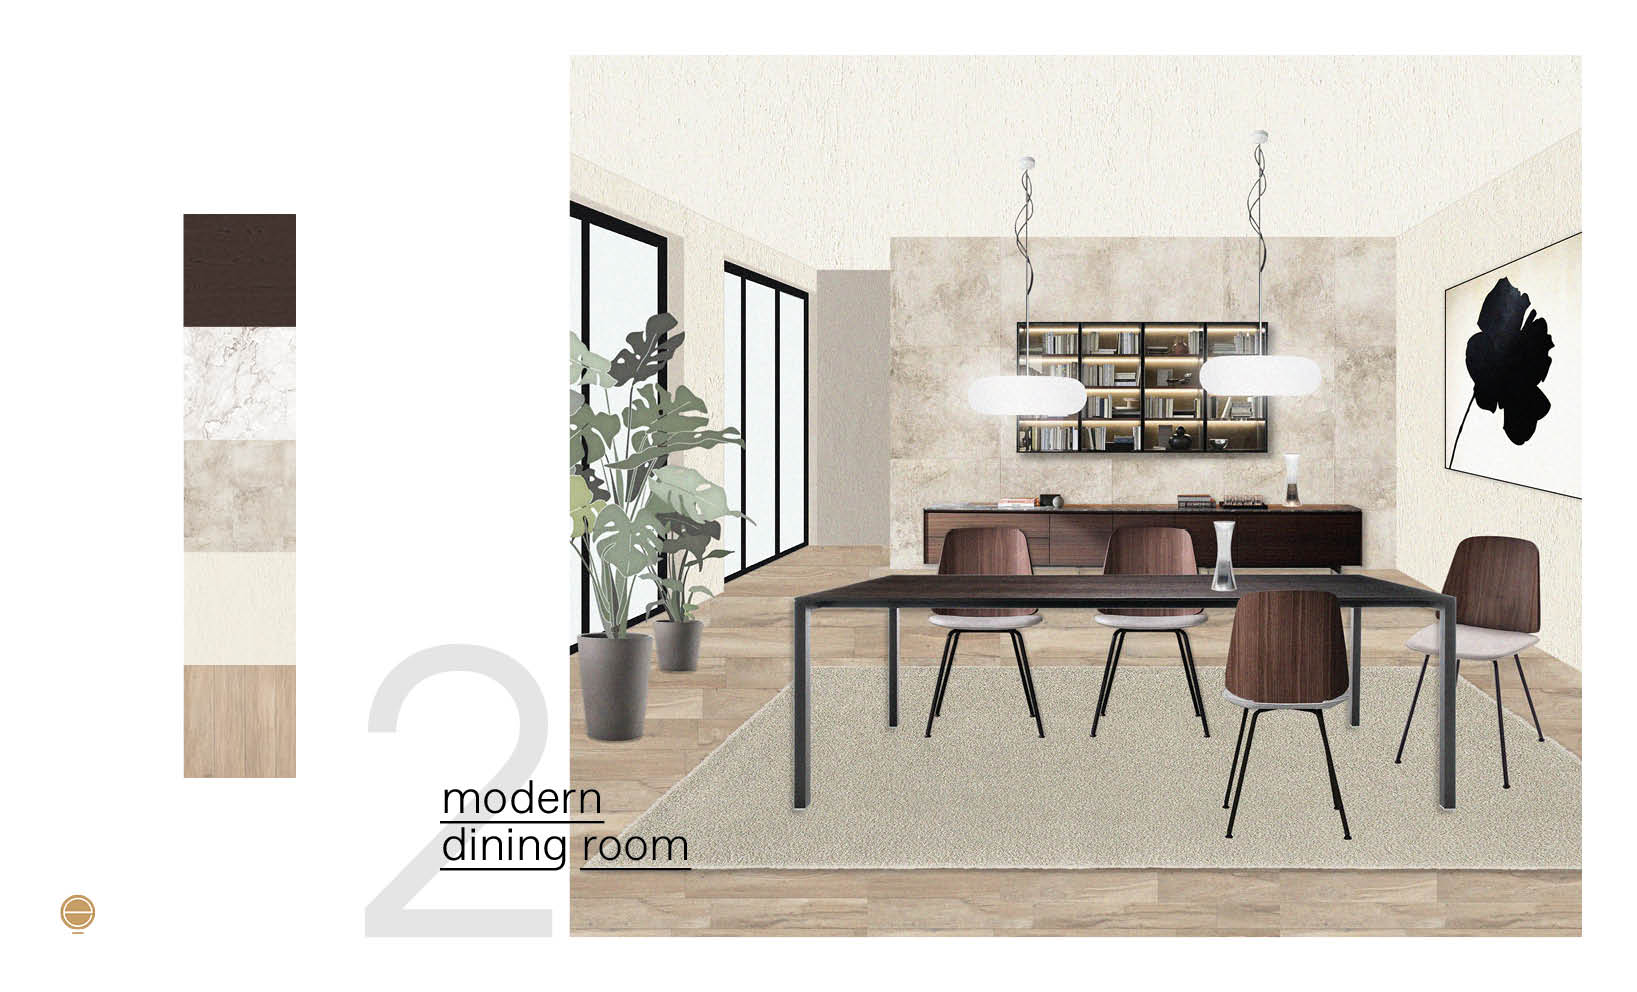 inspiration for your modern Italian dining room set